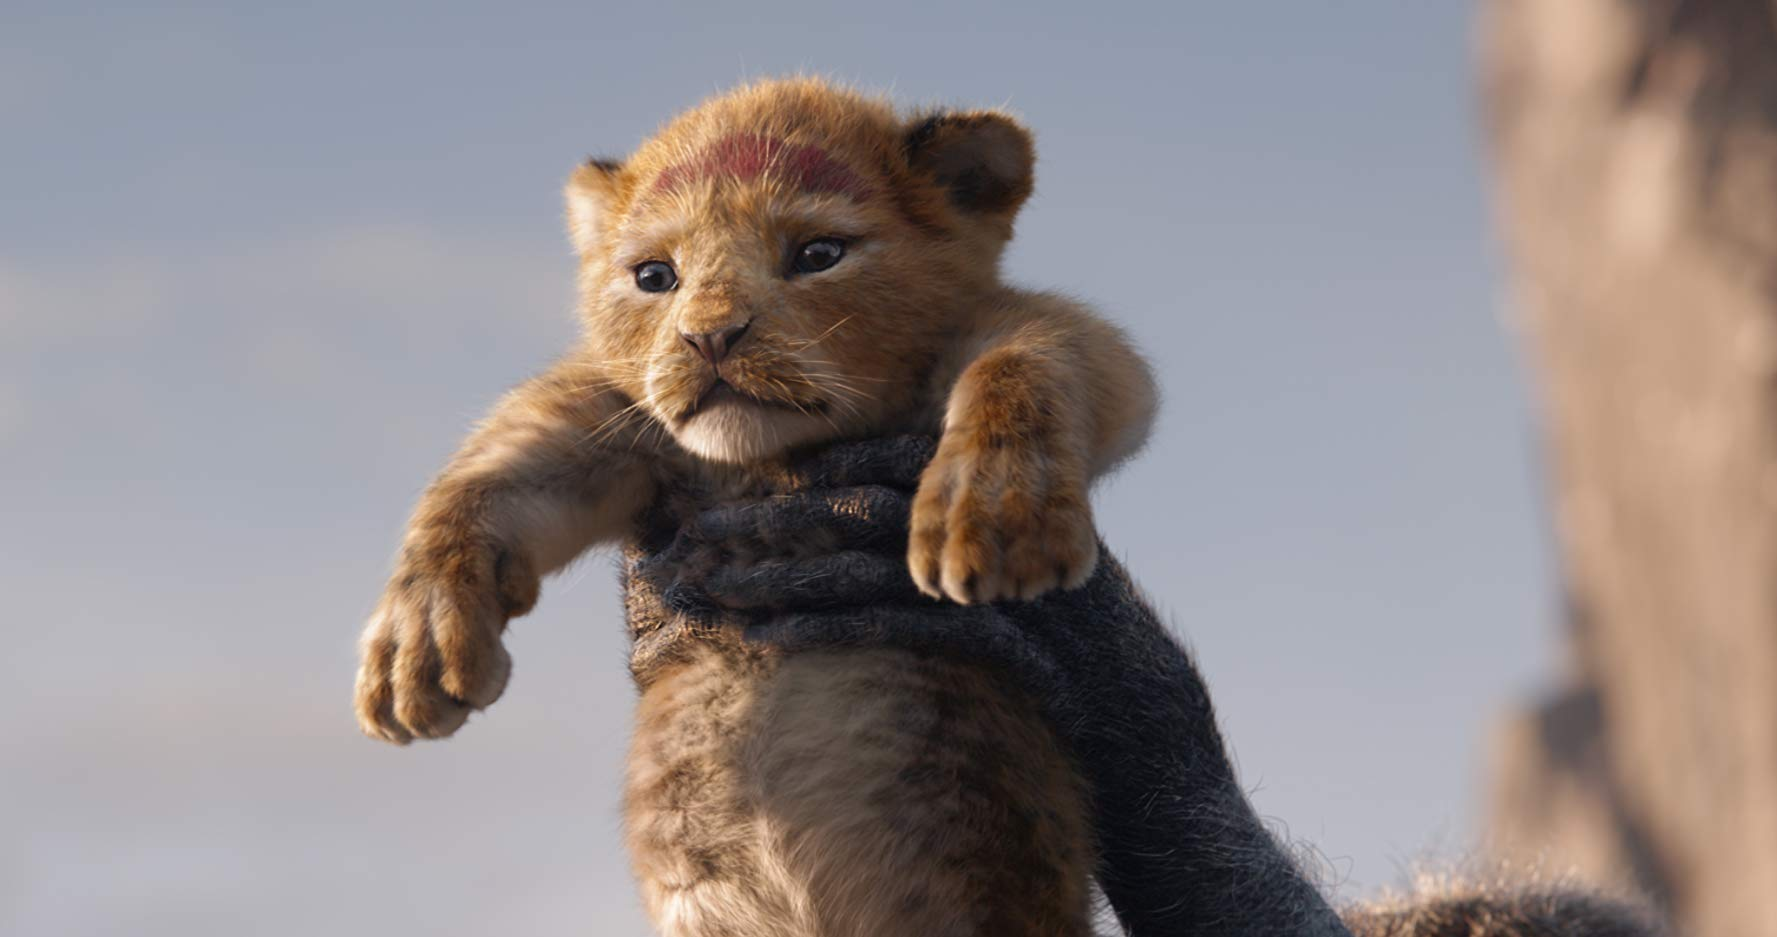 The Lion King Beyonce, Donald Glover, Seth Rogen, Chiwetel Ejiofor, James Earl Jones, John Oliver, Disney